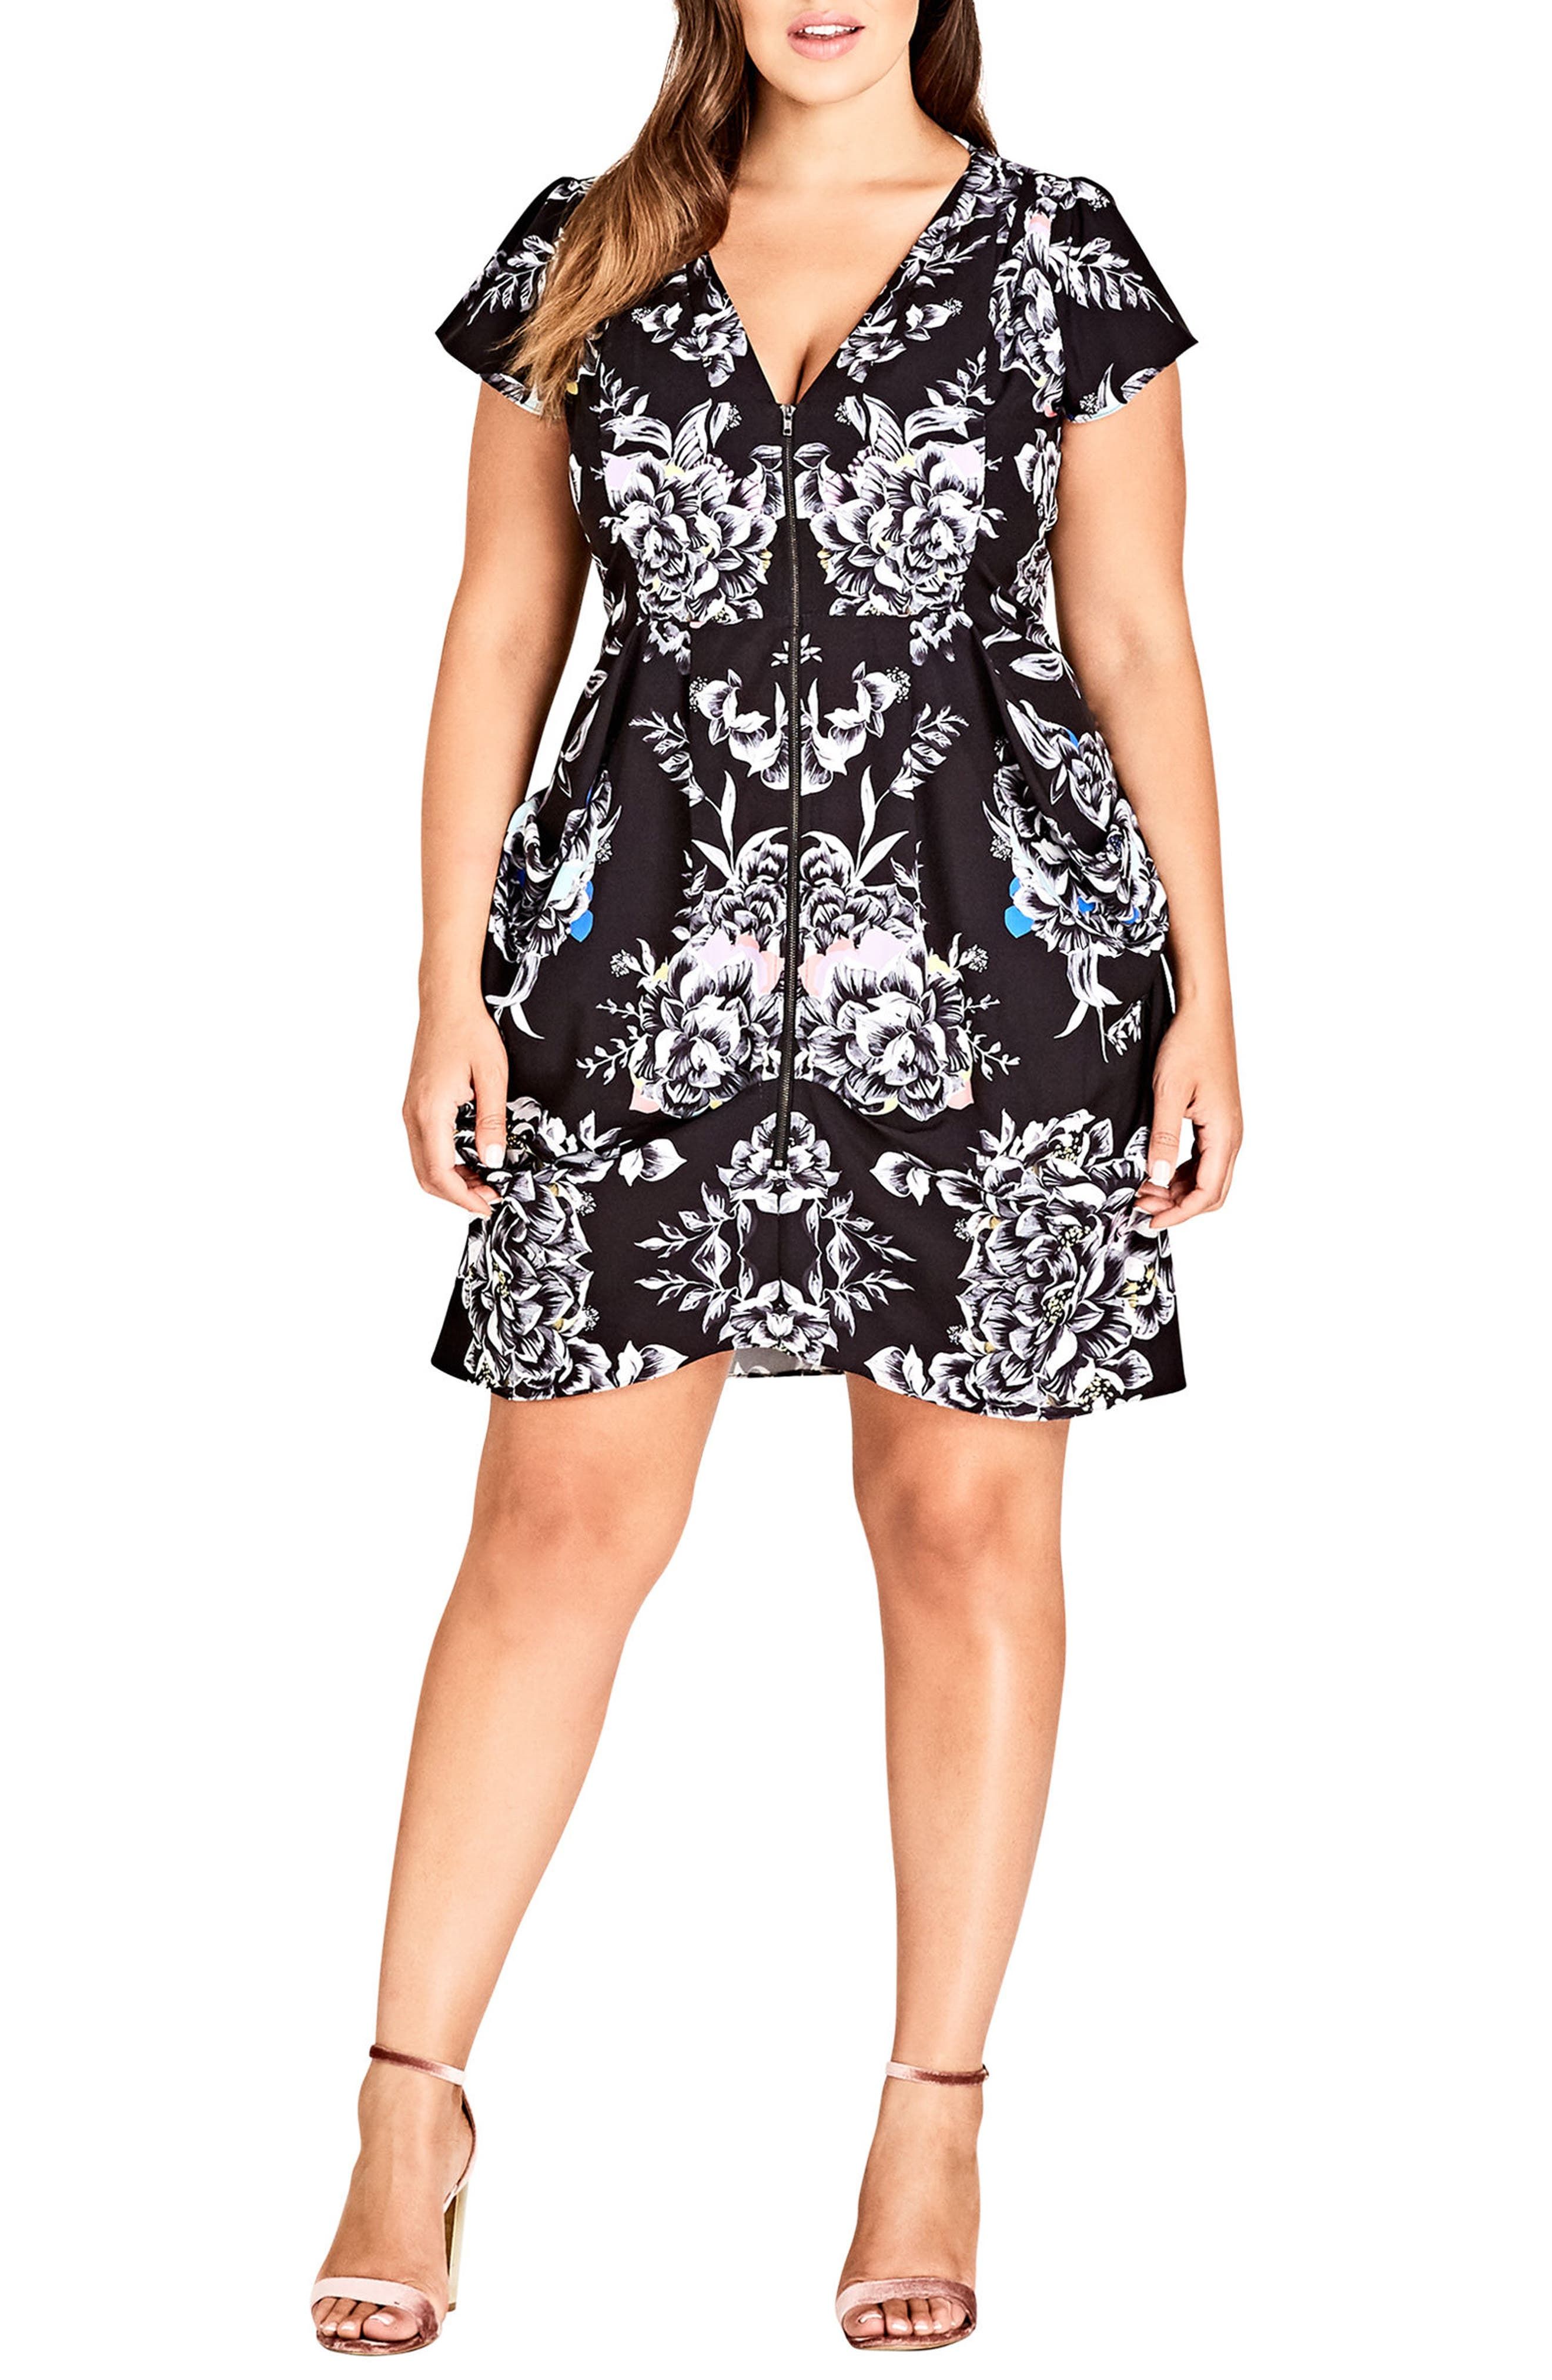 Alternate Image 1 Selected - City Chic Mirror Power Dress (Plus Size)